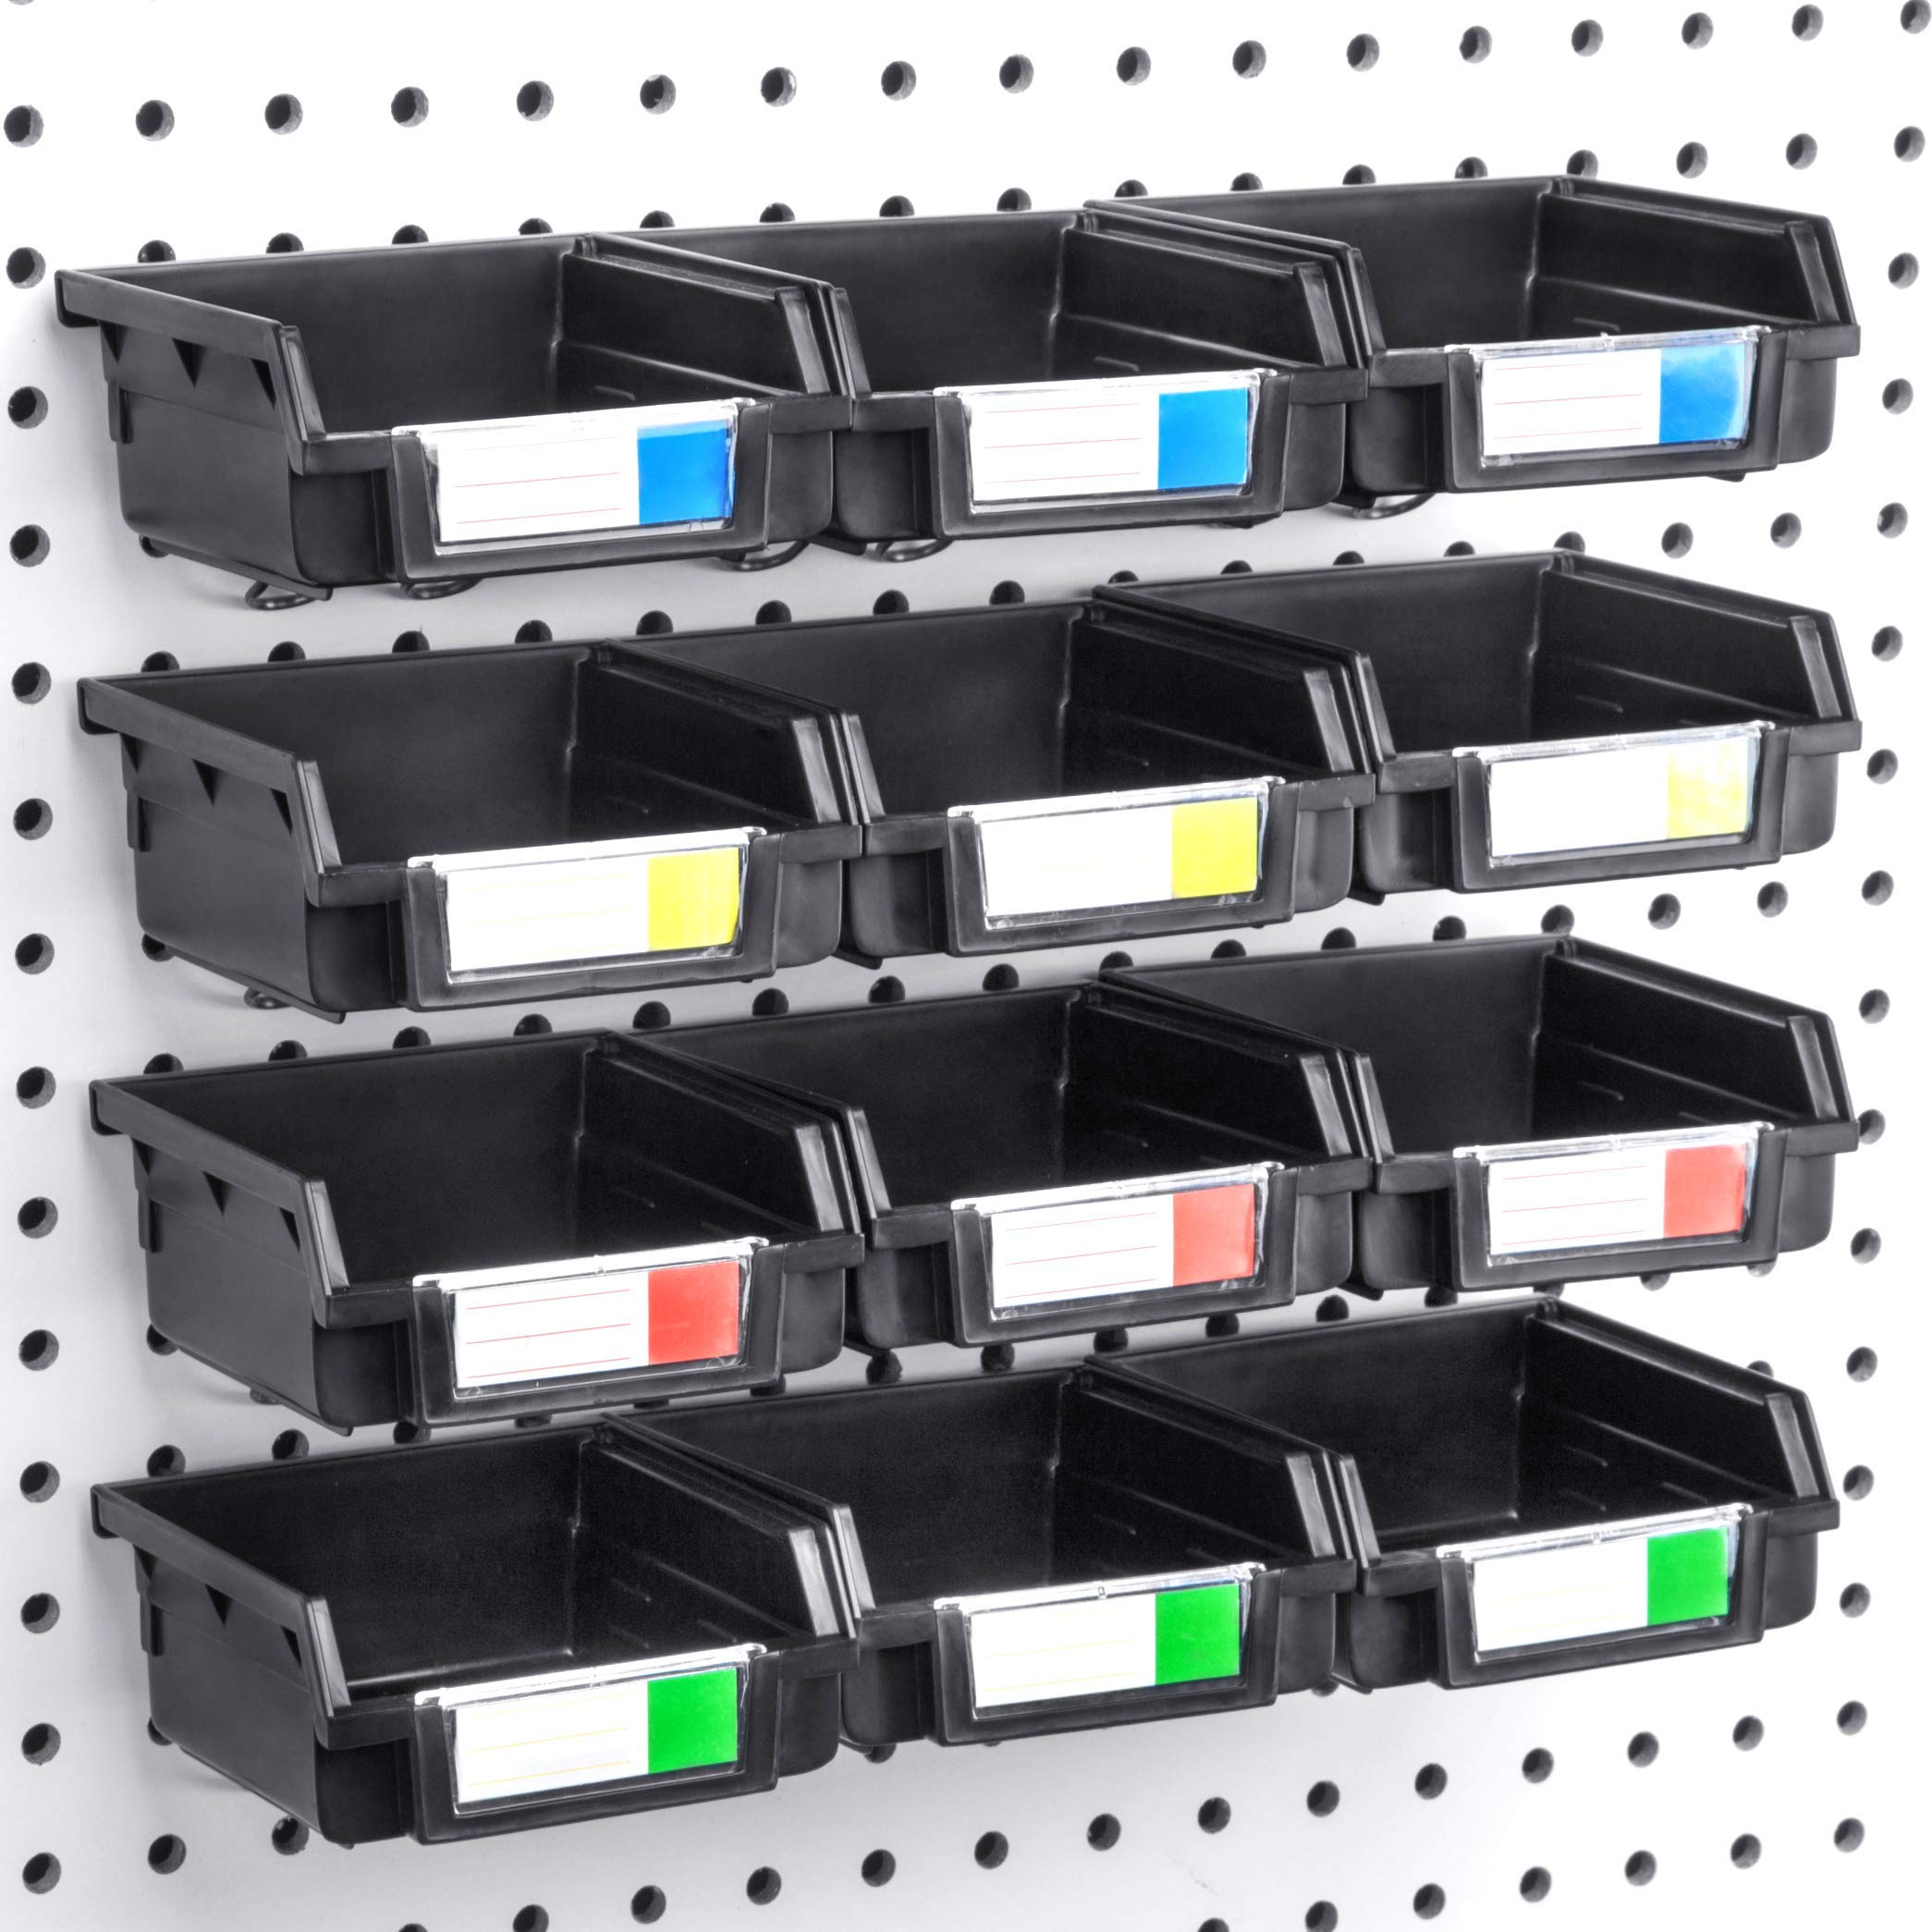 Pegboard Bins - 12 Pack Black - Hooks to Any Peg Board - Organize Hardware, Accessories, Attachments, Workbench, Garage Storage, Craft Room, Tool Shed, Hobby Supplies, Small Parts by Conor Tool